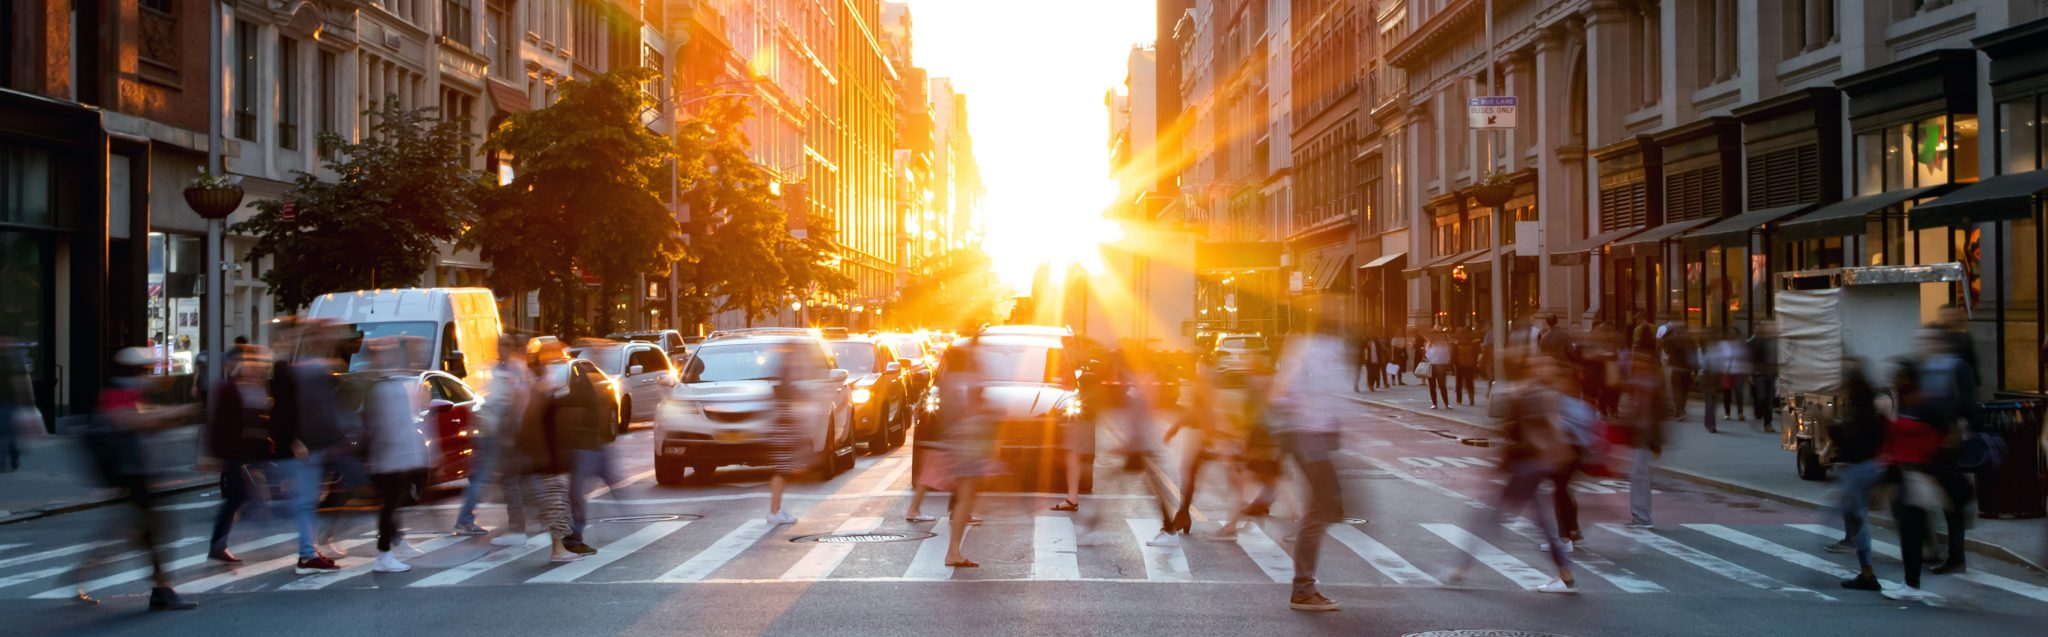 People walking in the street as the sun sets in New York City.